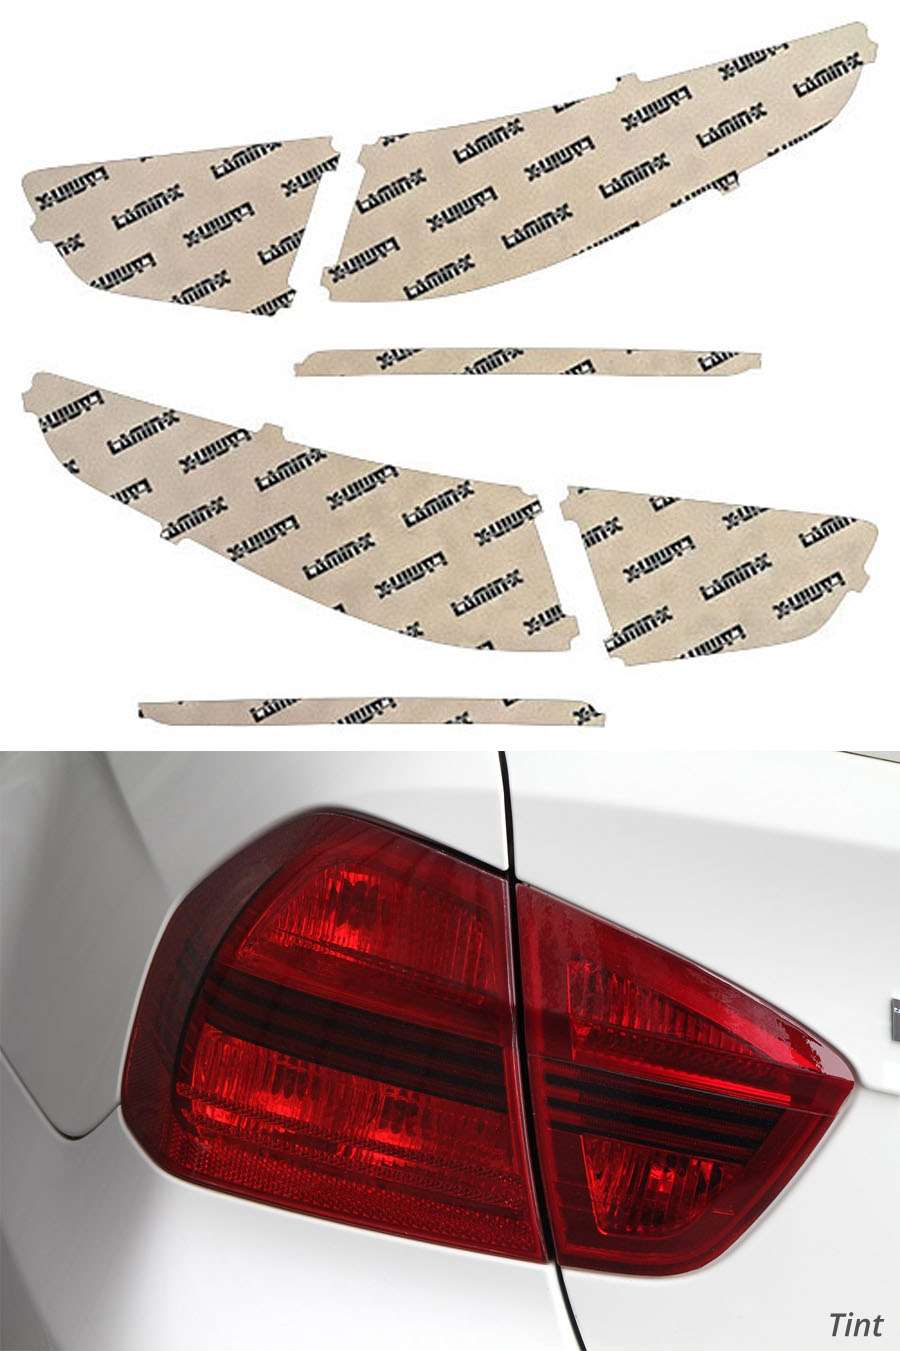 Lamin-X Tail Light Covers - Lamin-X K227